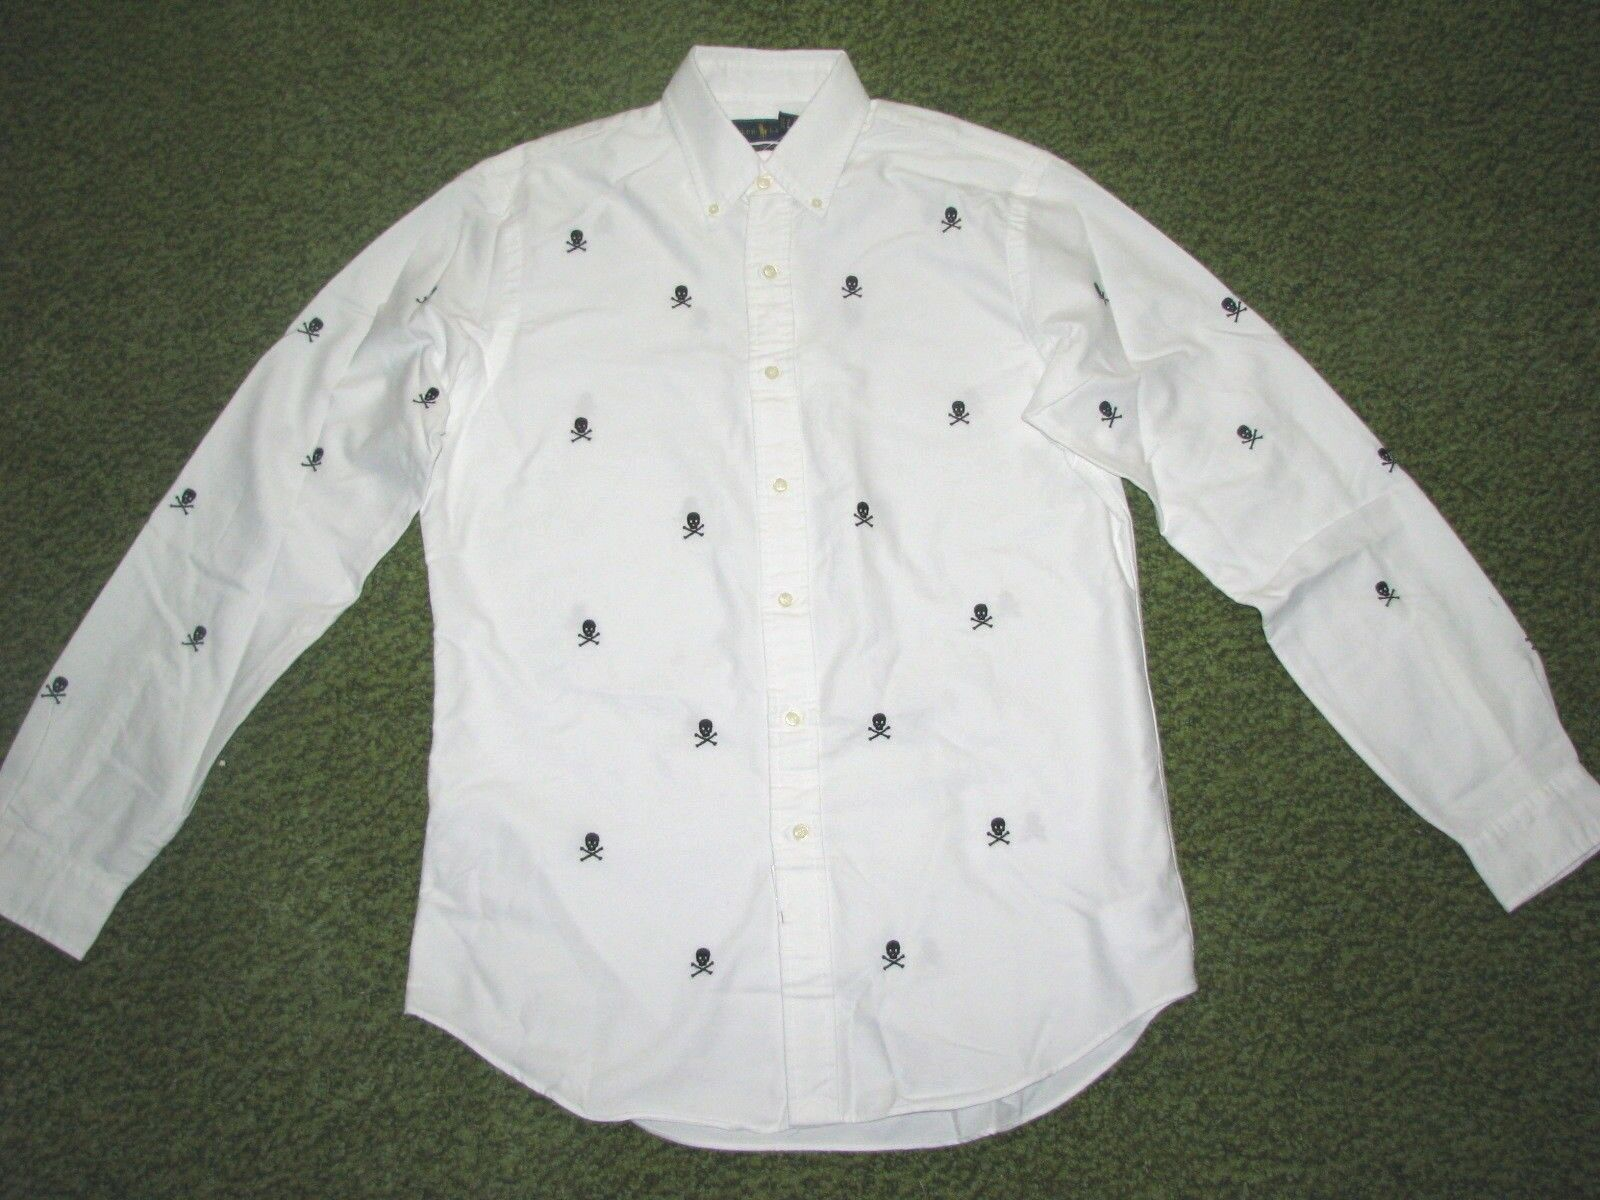 Men's (L) POLO-RALPH LAUREN White  SKULL & CROSSBONES  Oxford Shirt